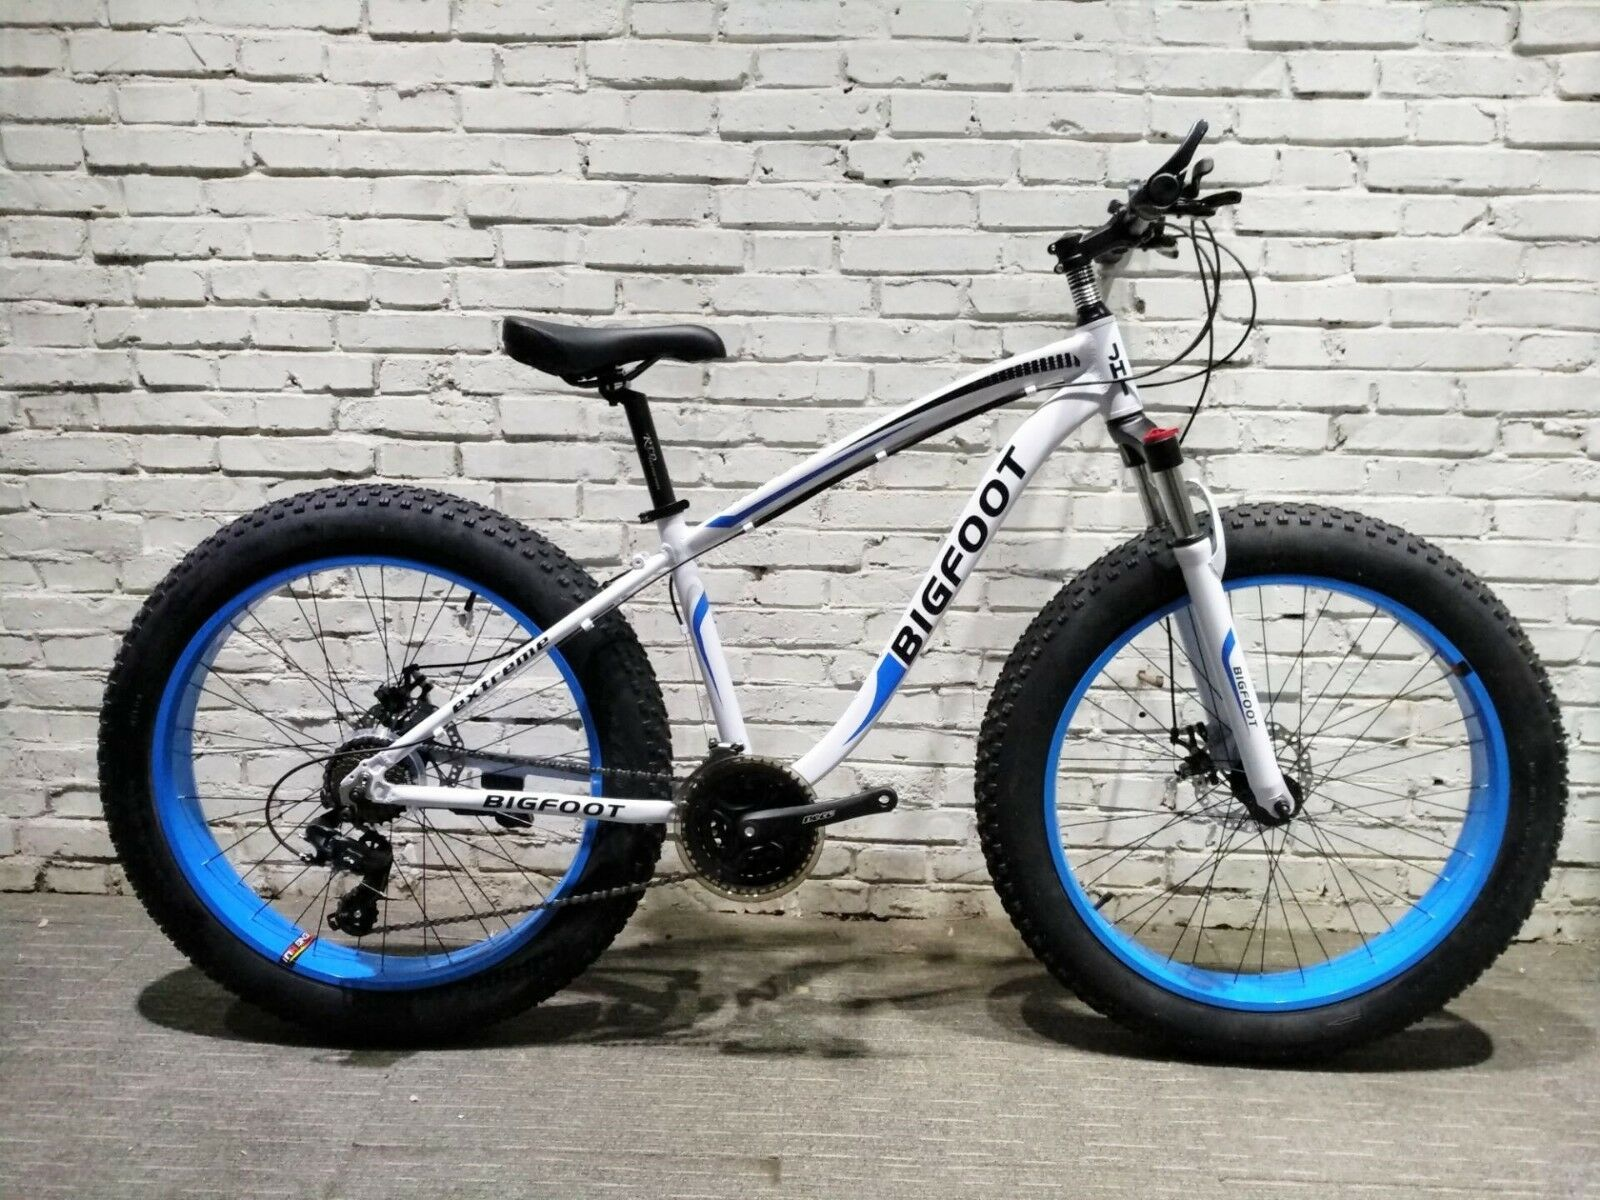 Fat Bike JHI  Bigfoot  Extreme 26  X 4  wheels Bicycle with 21 Shimano Gears